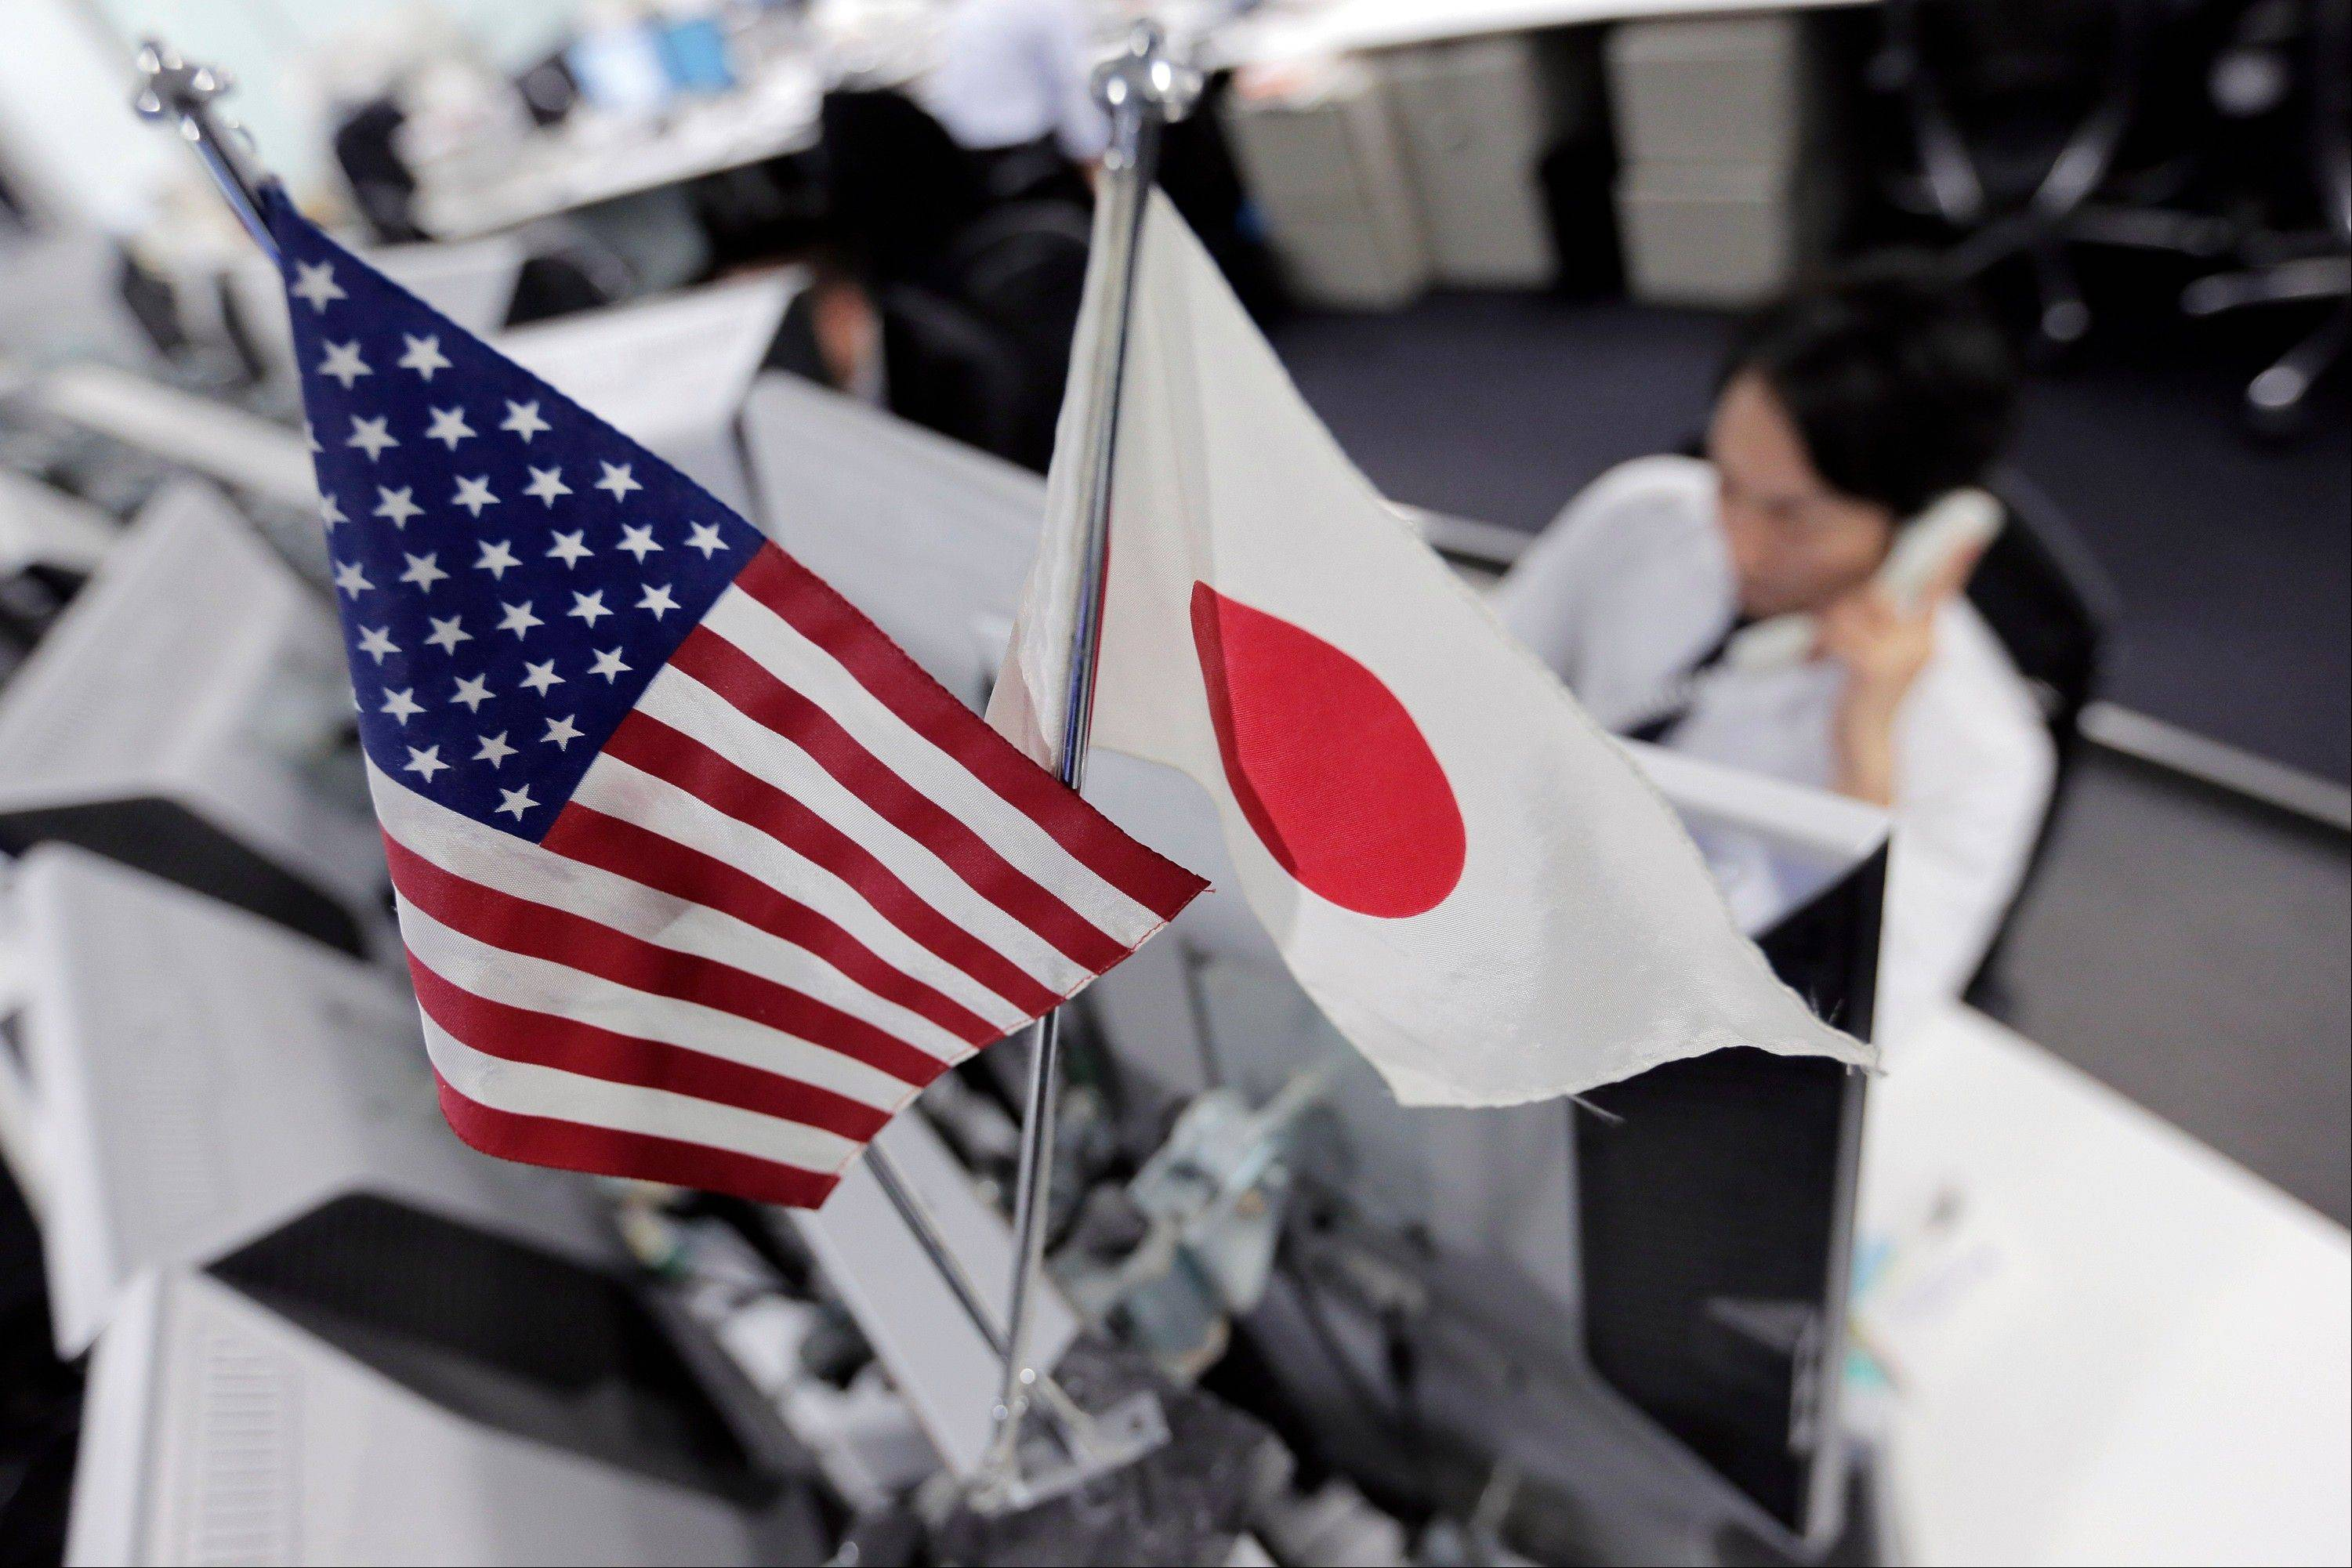 The Japanese and U.S. governments will incorporate a policy on how to respond to cyberattacks in the Japan-U.S. defense cooperation guidelines, a move aimed at countering a possible attack by China, according to Japanese government sources. Under the new policy, the Self-Defense Forces and the U.S. military would jointly respond if Japan's defense computer system came under a cyberattack.